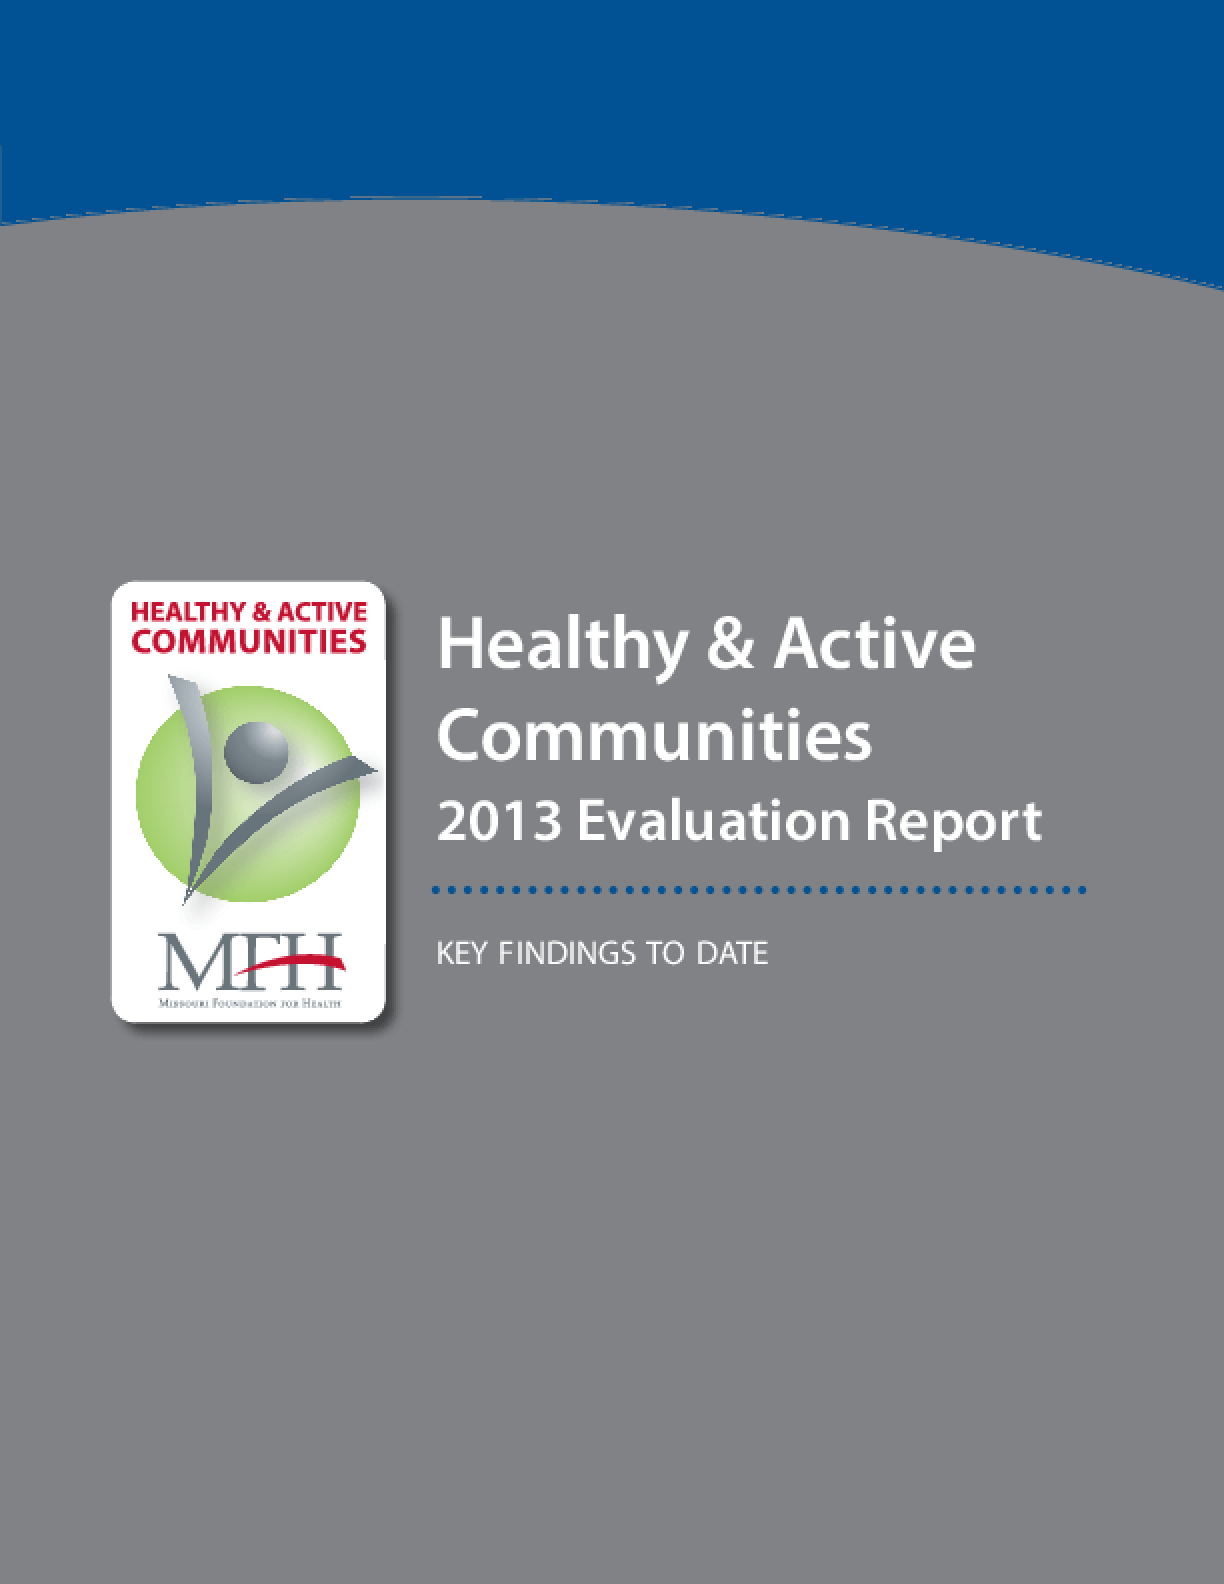 Healthy and Active Communities 2013 Evaluation Report: Key Findings to Date